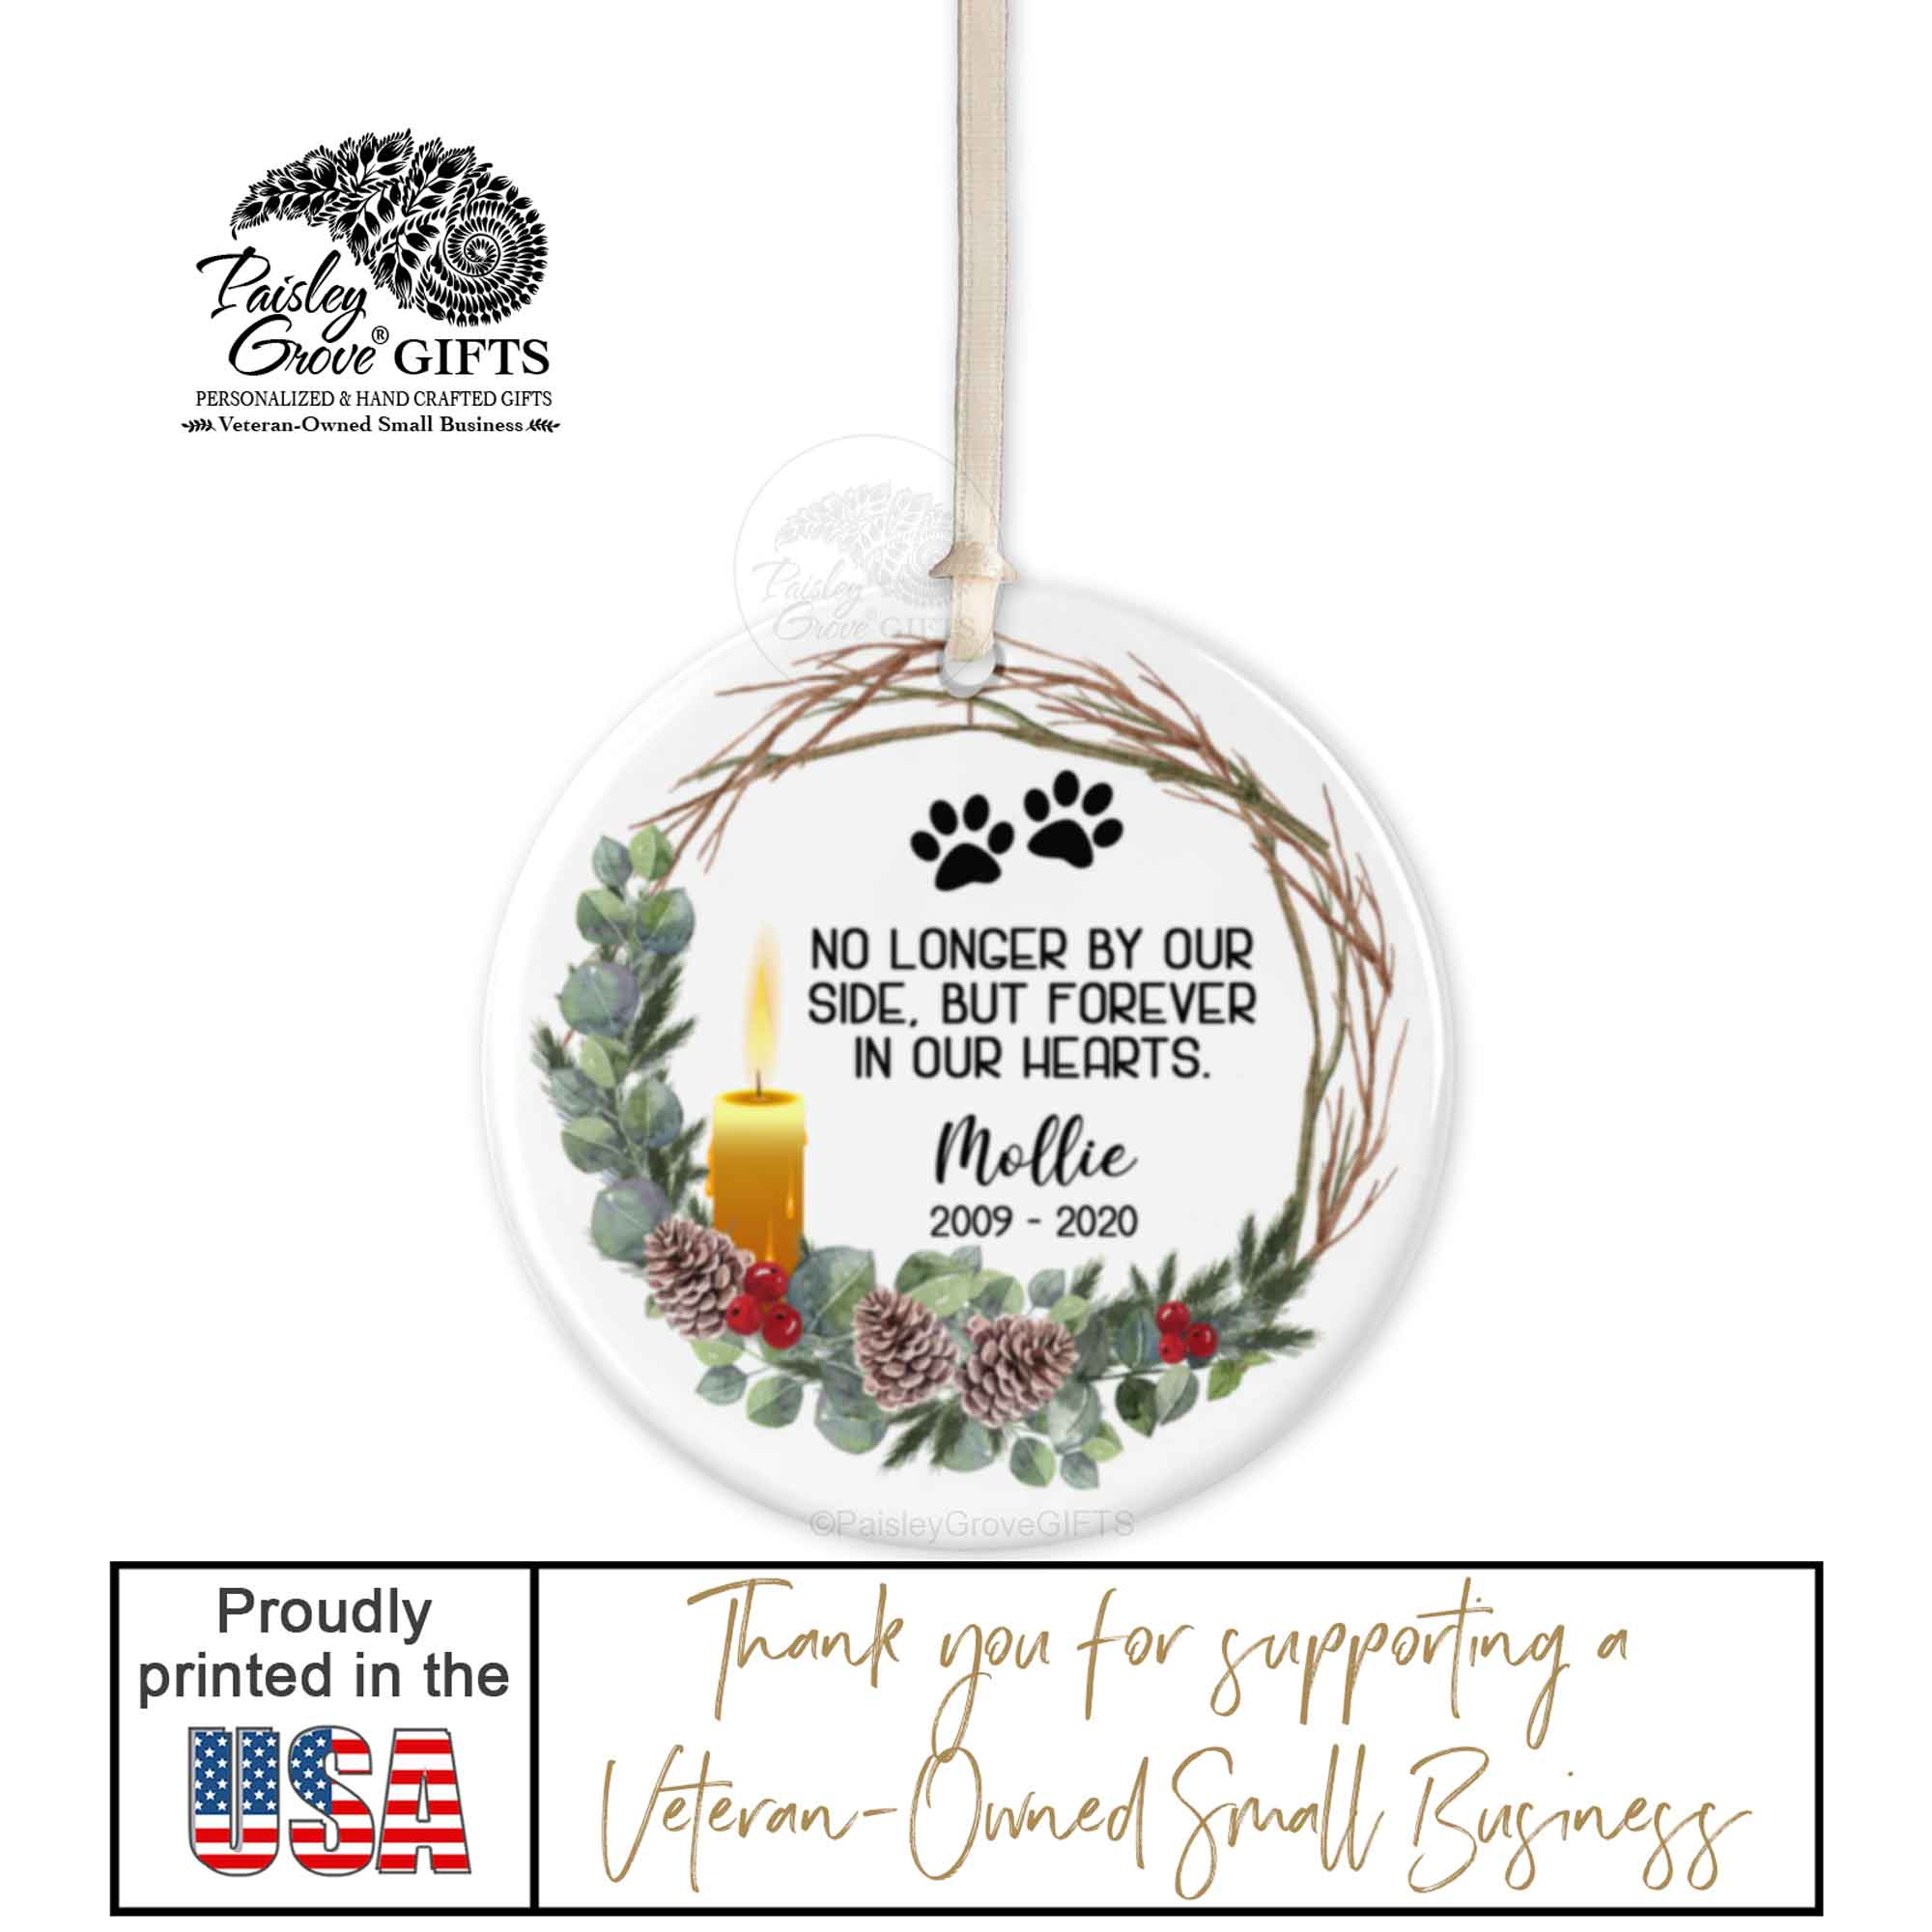 Copyright PaisleyGroveGIFTS S522e Personalized Pet Sympathy Gift is Printed in the USA by PaisleyGroveGIFTS